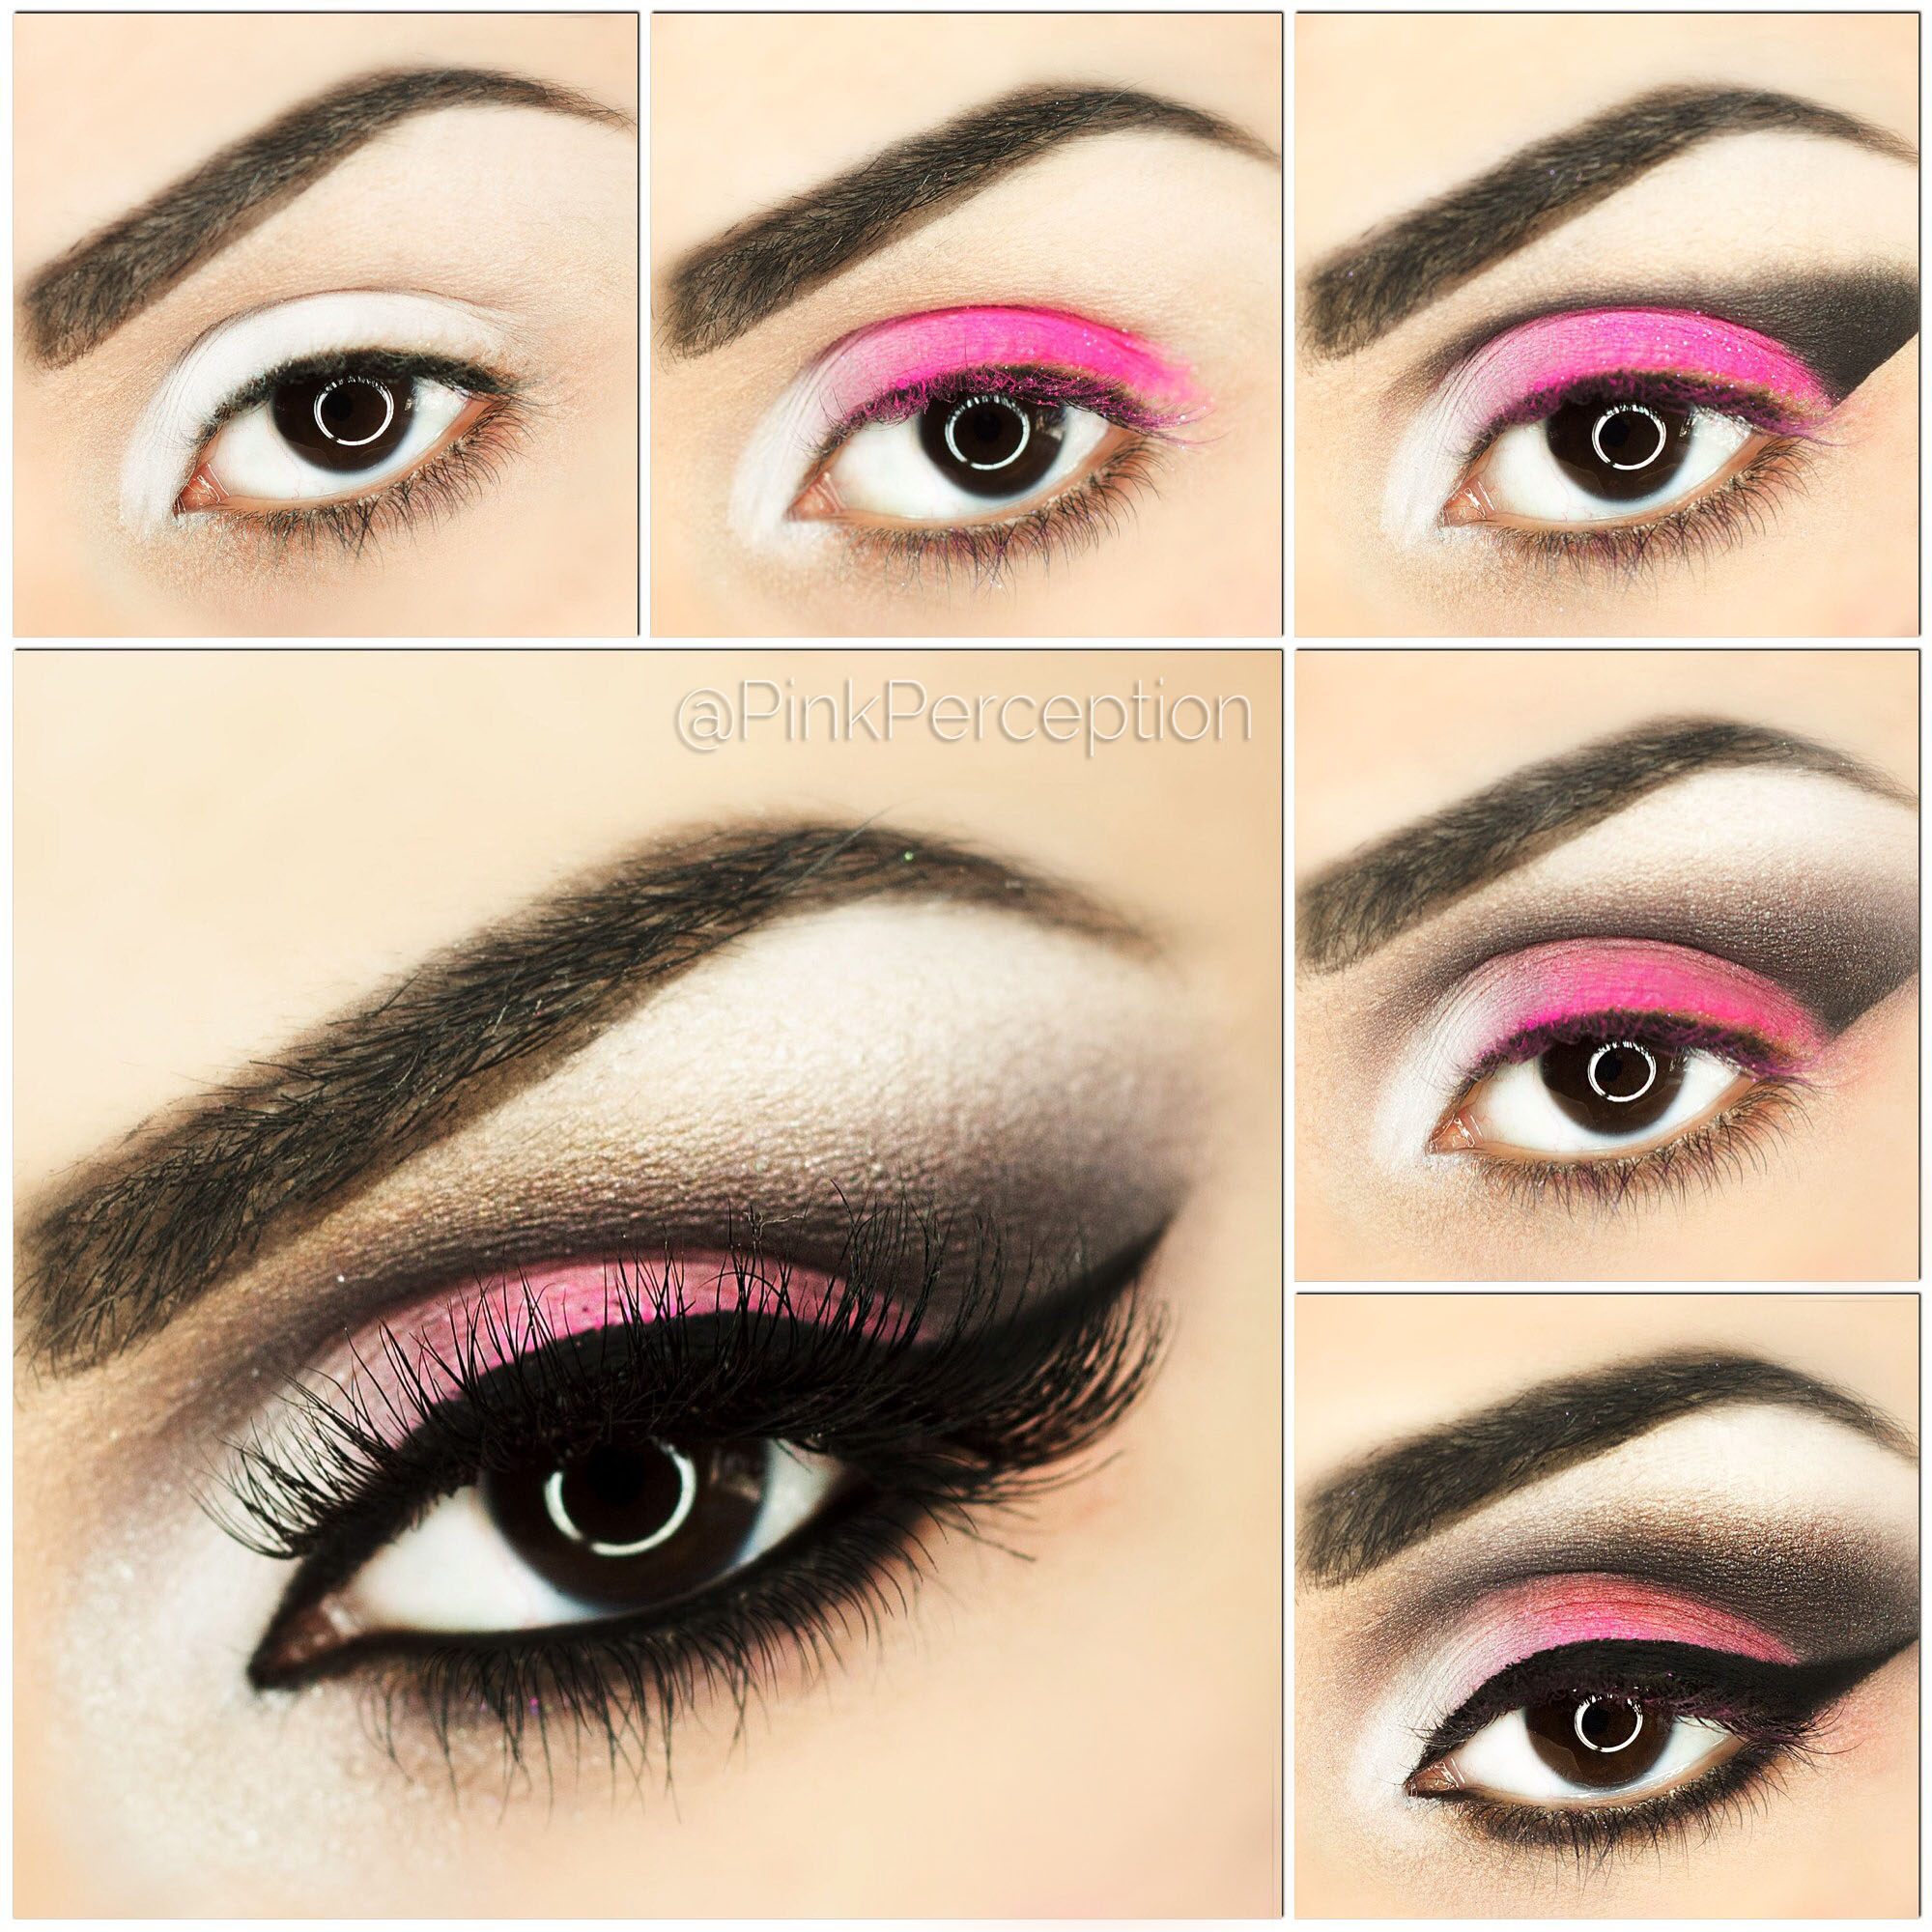 Black, white, and pink smoky eye